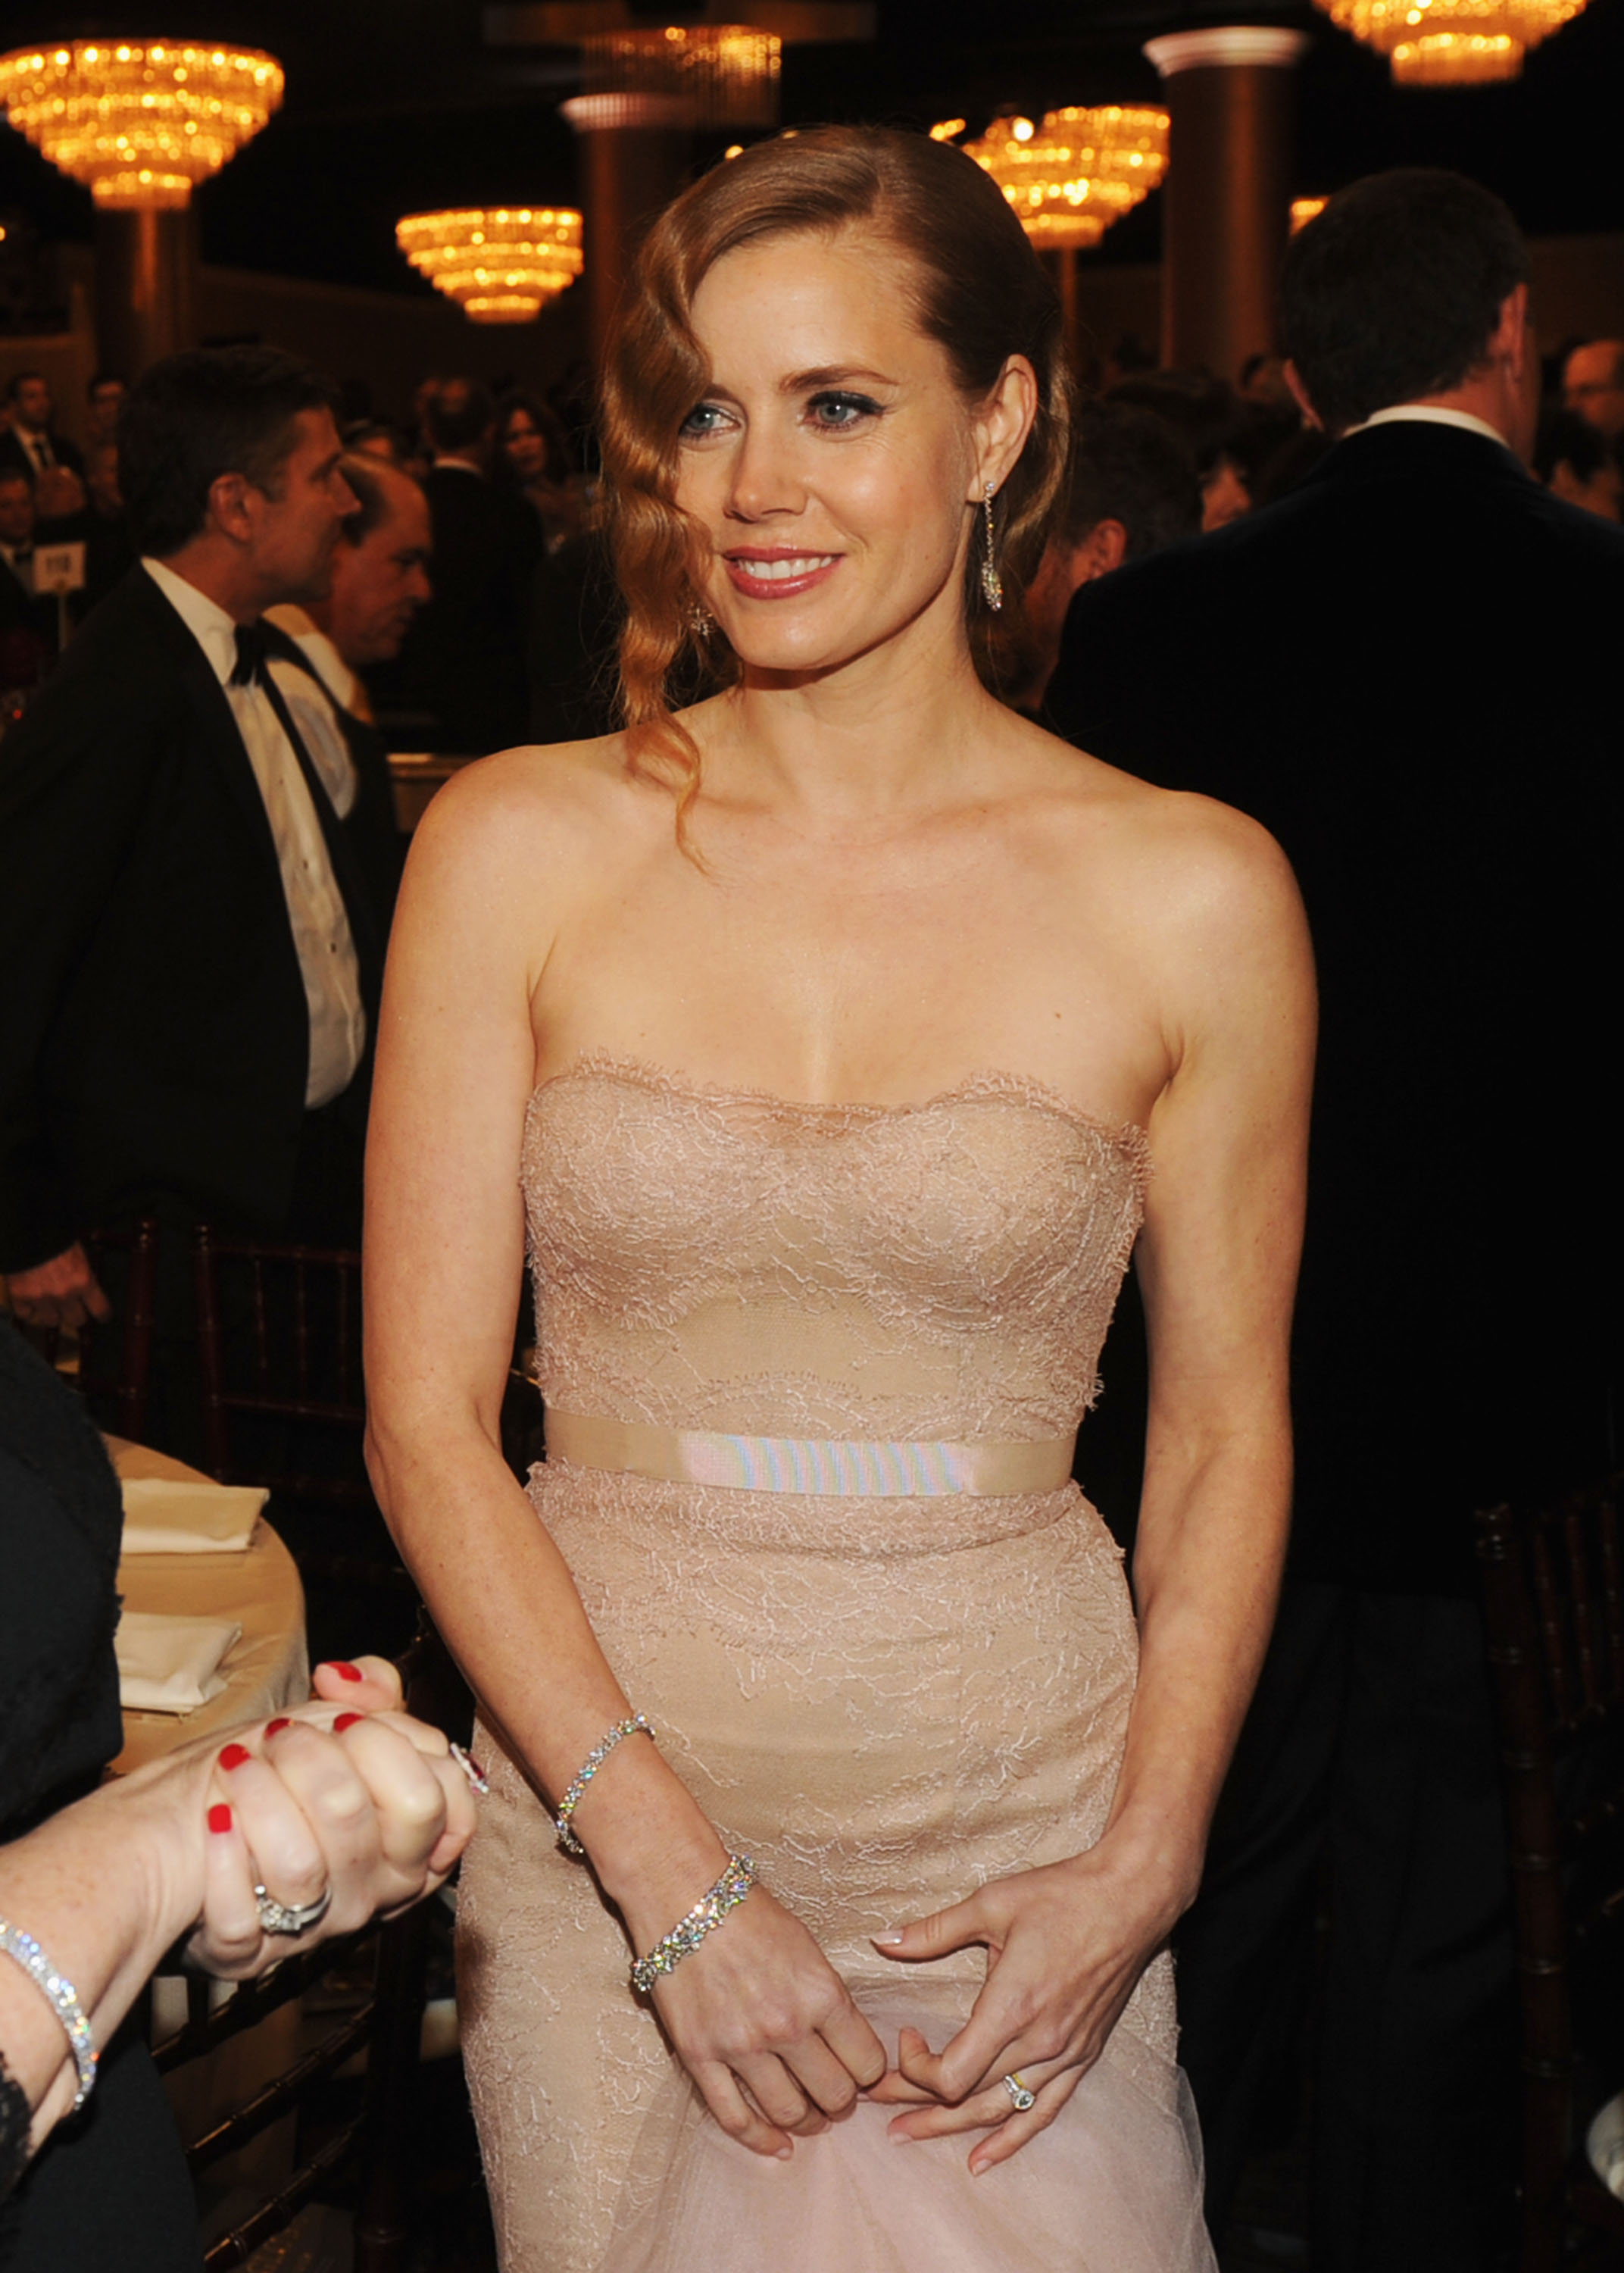 Golden Globes 2013 Red Carpet Gallery | Movie and ... | 2144 x 3000 jpeg 559kB